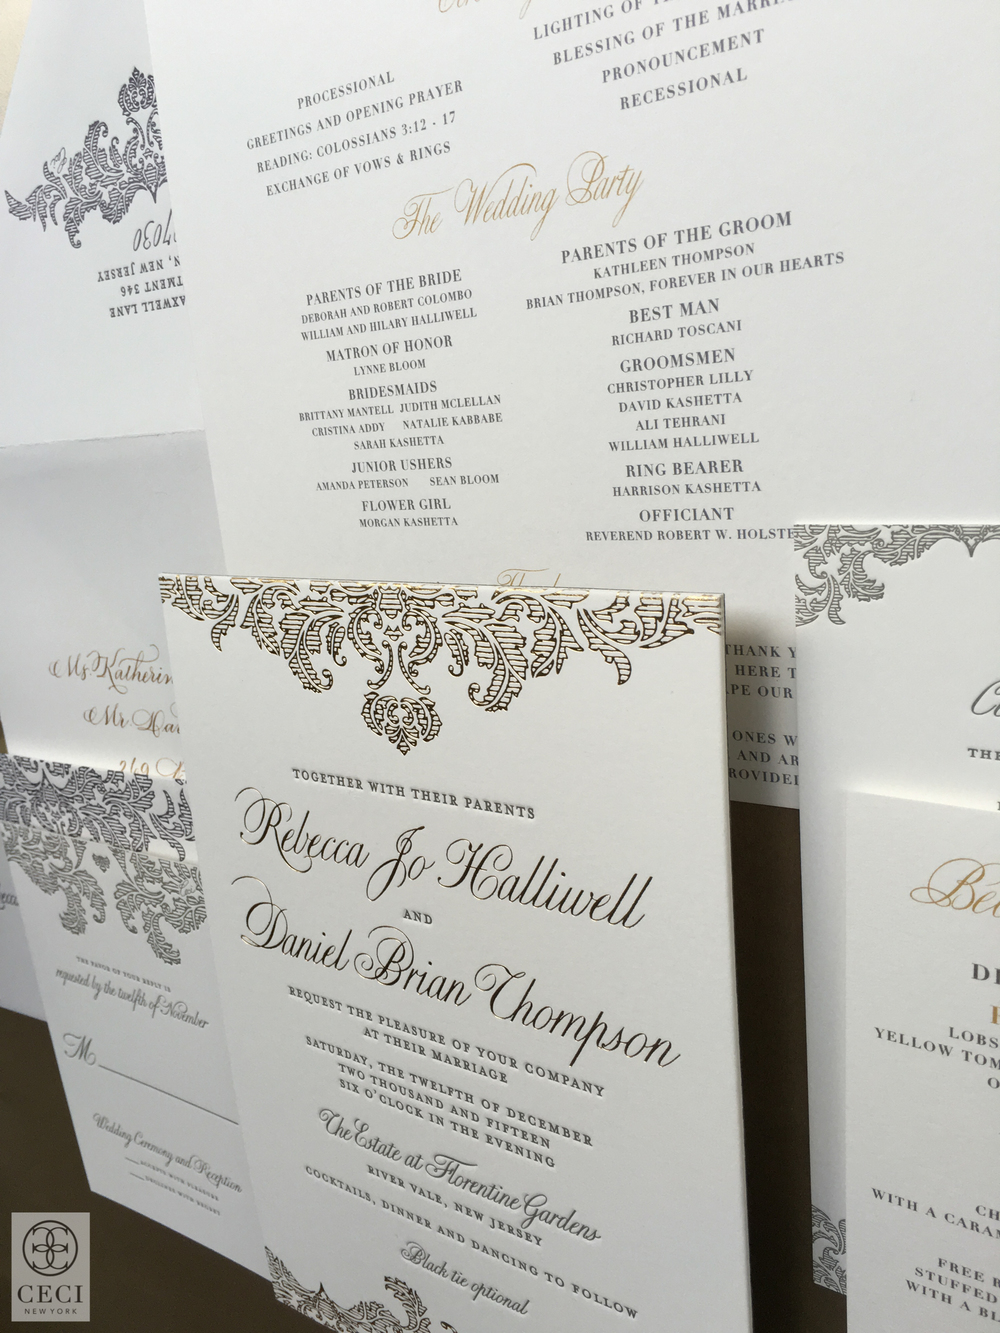 Ceci_New_York_New_Jersey_Invitations_Wedding_New_York_Elegance_Silver_Blue_Letterpress_Deco_Classic_Foil_Stamping_Custom_Couture_Personalized-83.jpg